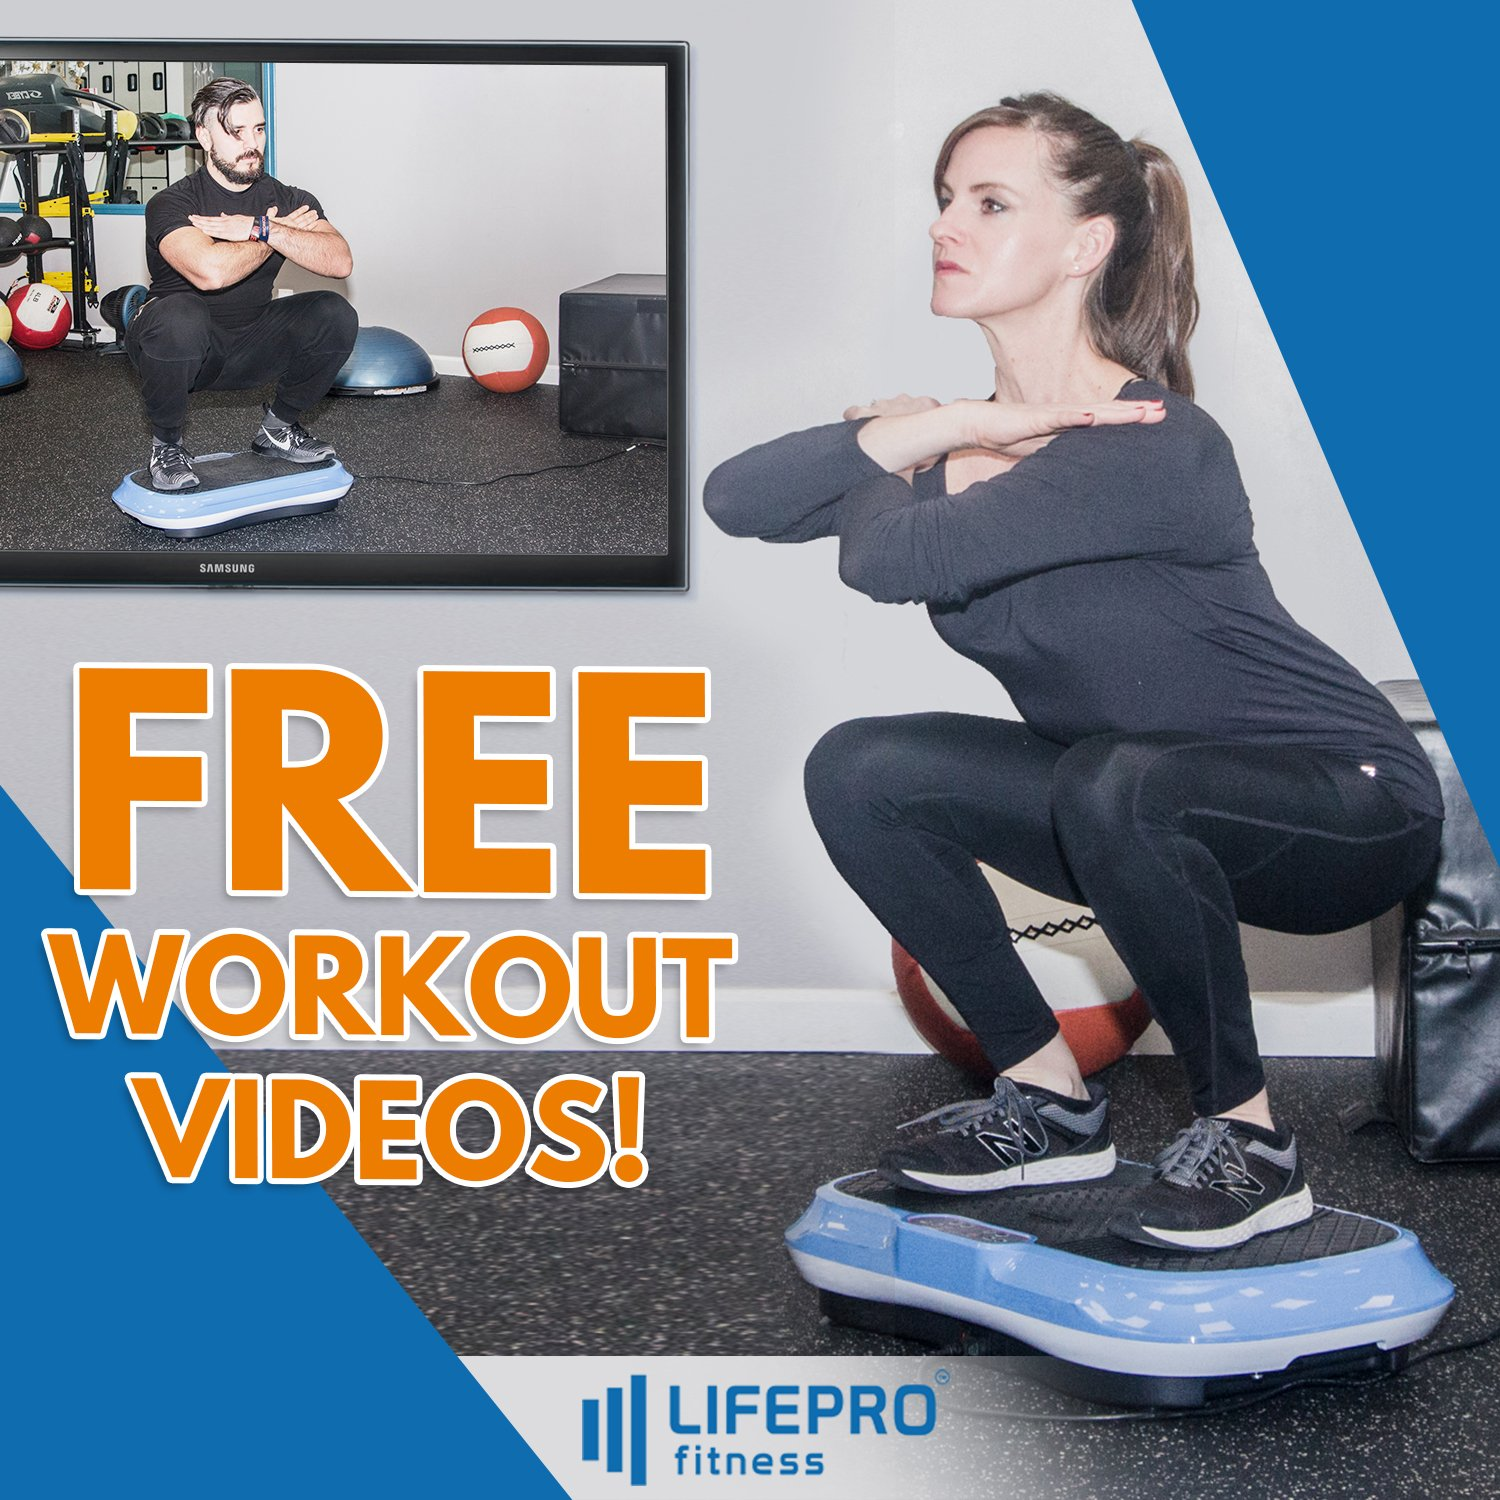 LifePro Vibration Plate Exercise Machine - Whole Body Workout Vibration Fitness Platform w/Loop Bands - Home Training Equipment for Weight Loss & Toning - Remote, Balance Straps, Videos & Manual by LifePro (Image #9)